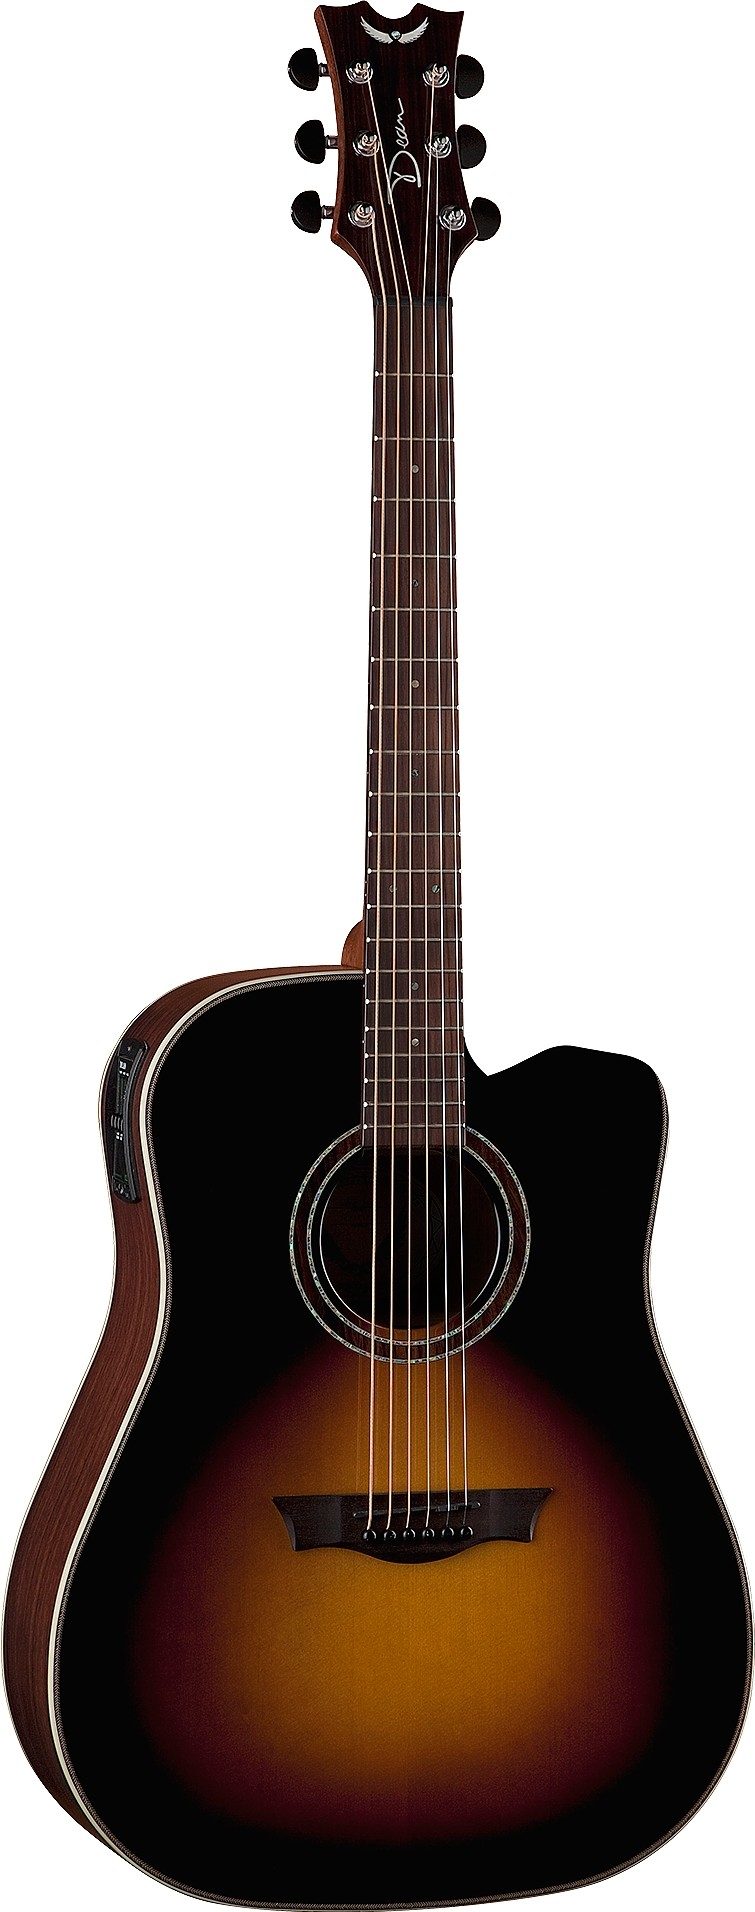 dean natural series dreadnought cutaway with aphex review. Black Bedroom Furniture Sets. Home Design Ideas